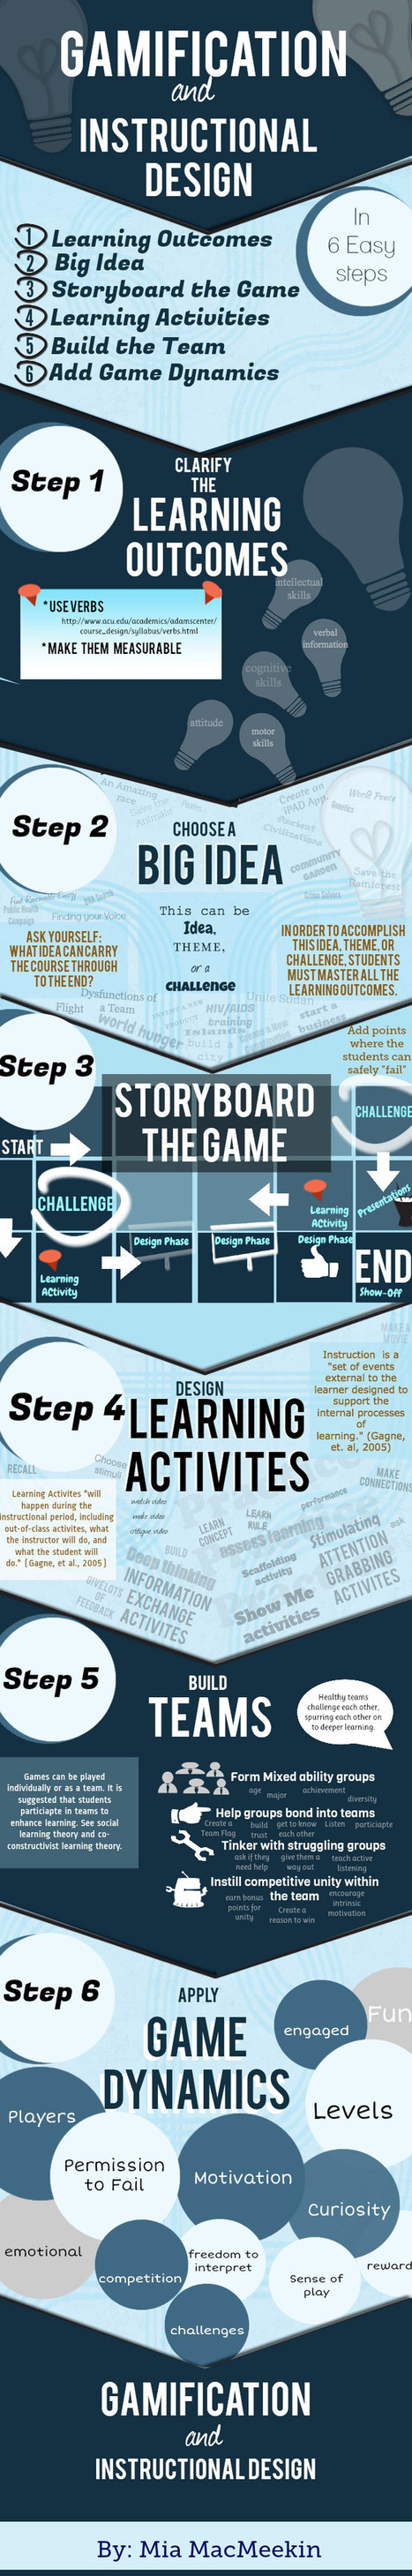 Gamification And Instructional Design | Games and Learnings | Scoop.it